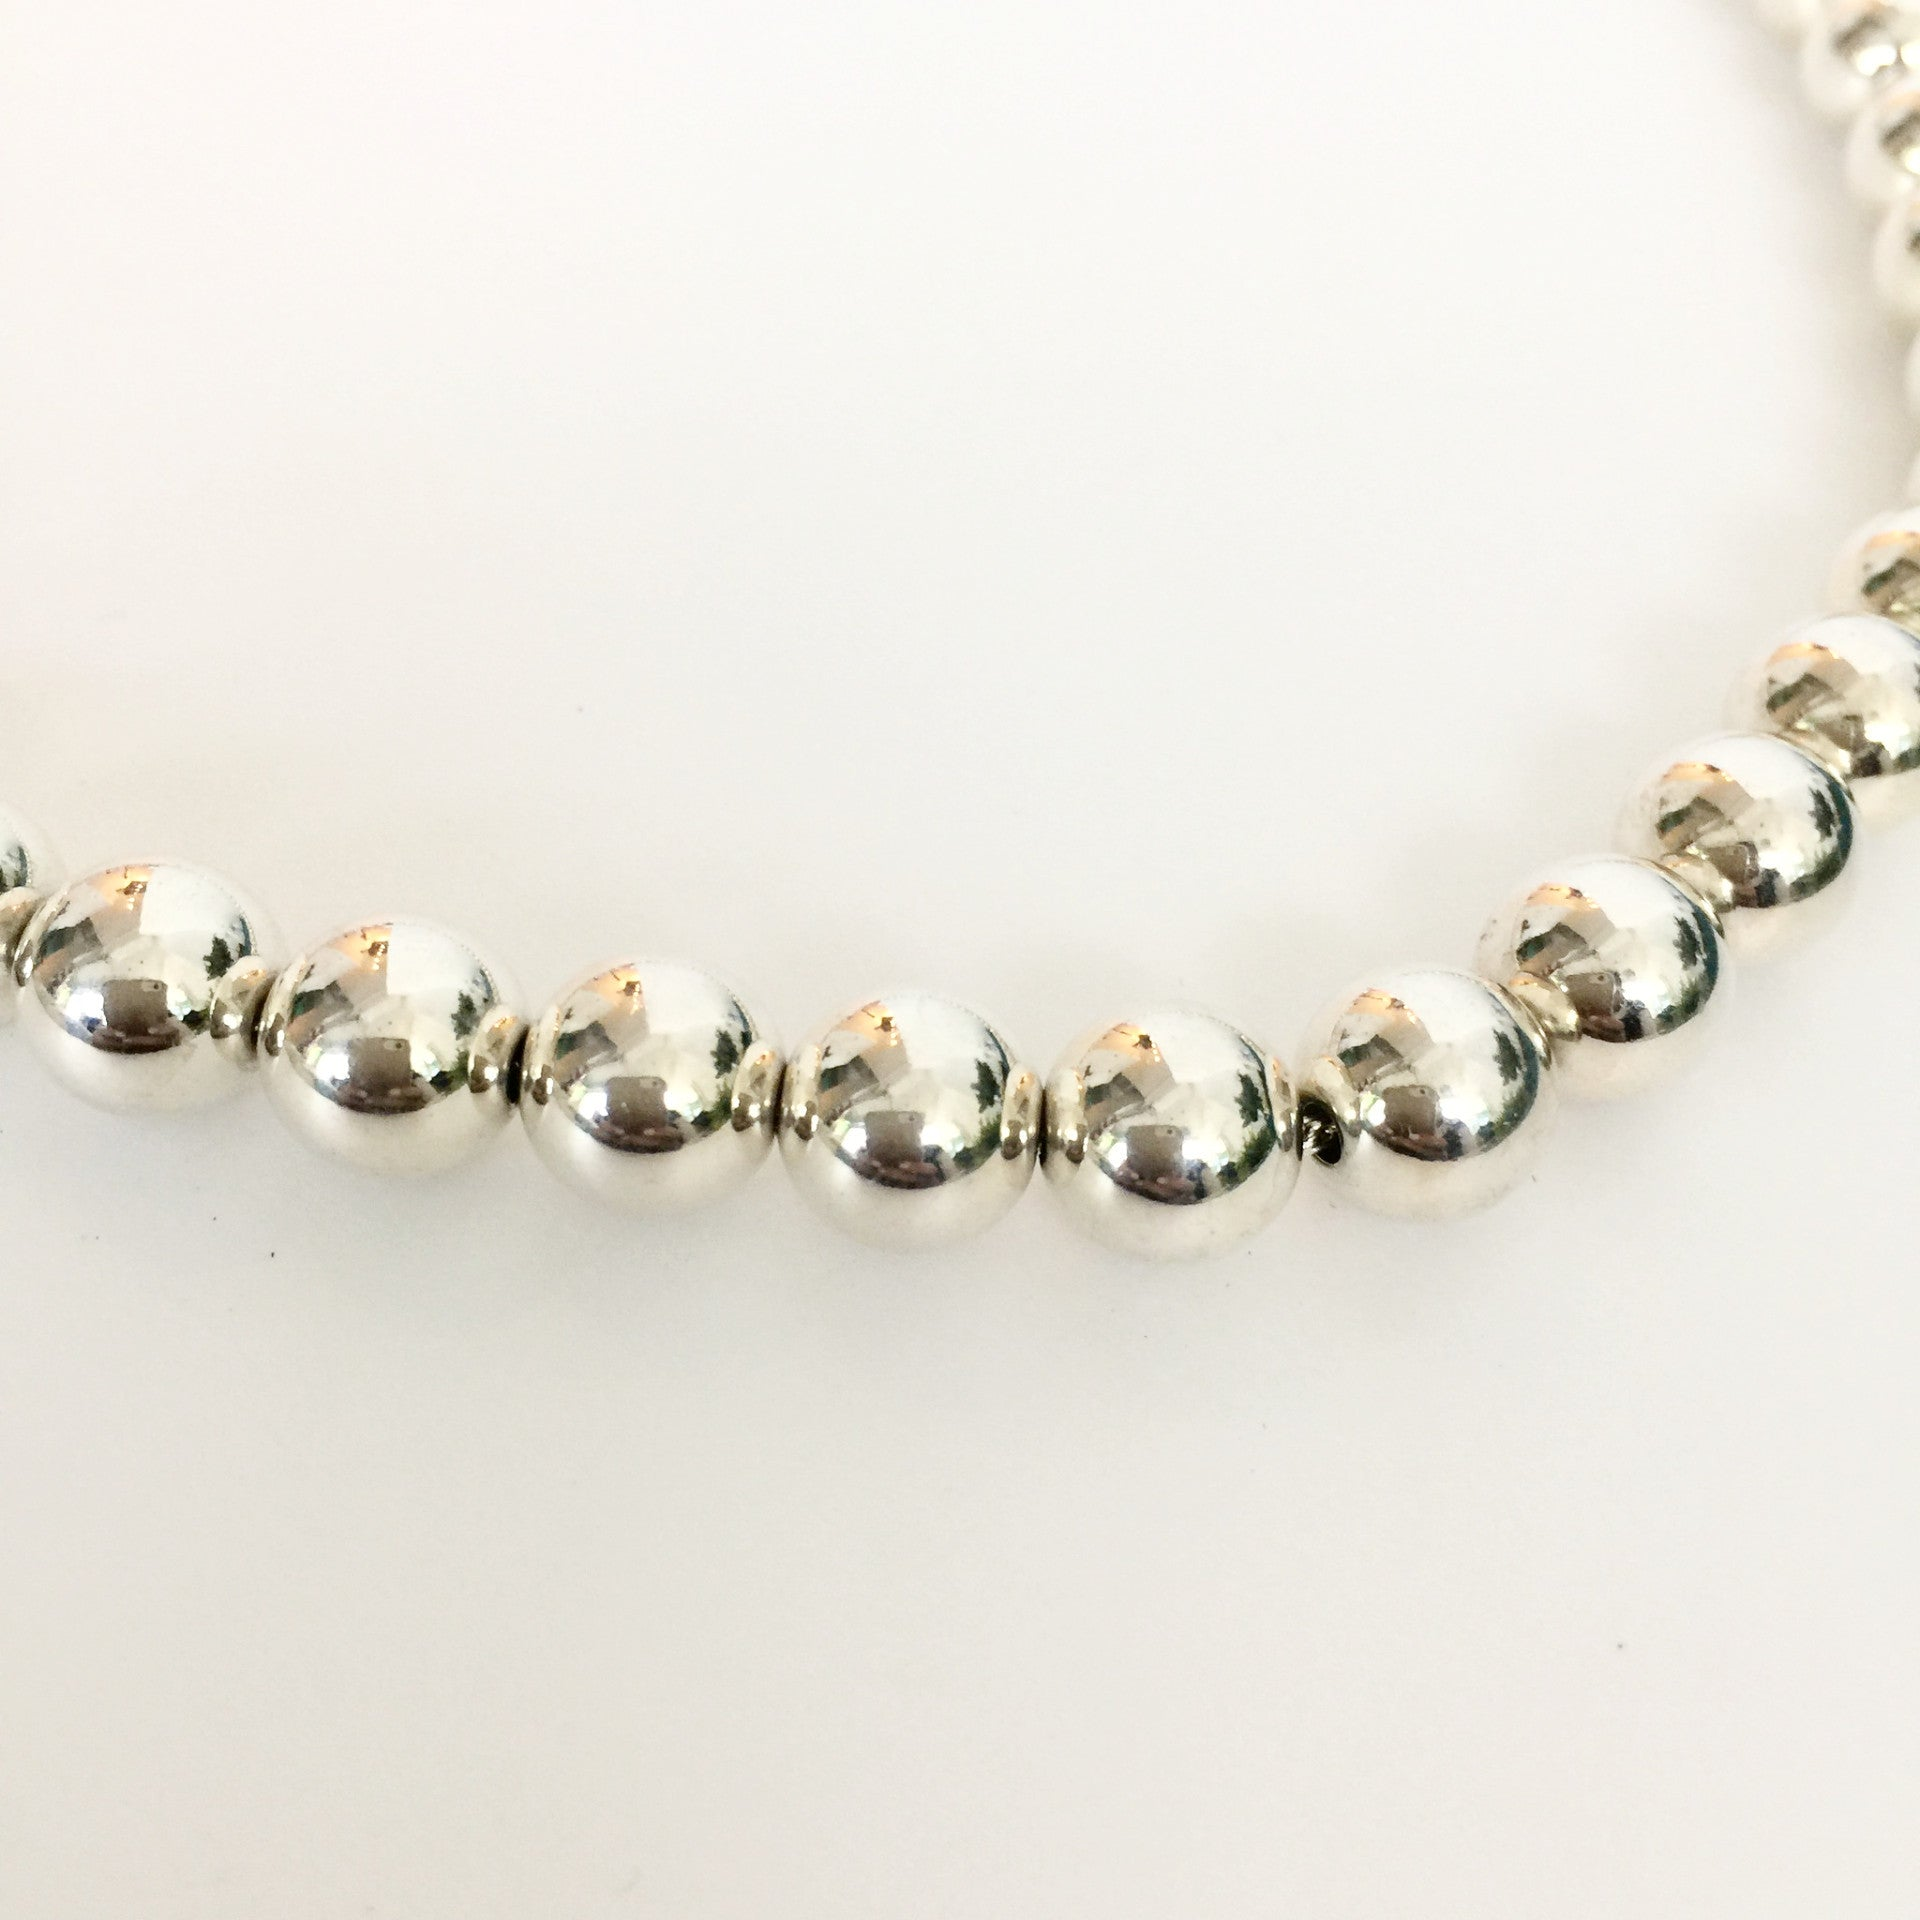 Authentic TIFFANY & CO Bead Necklace